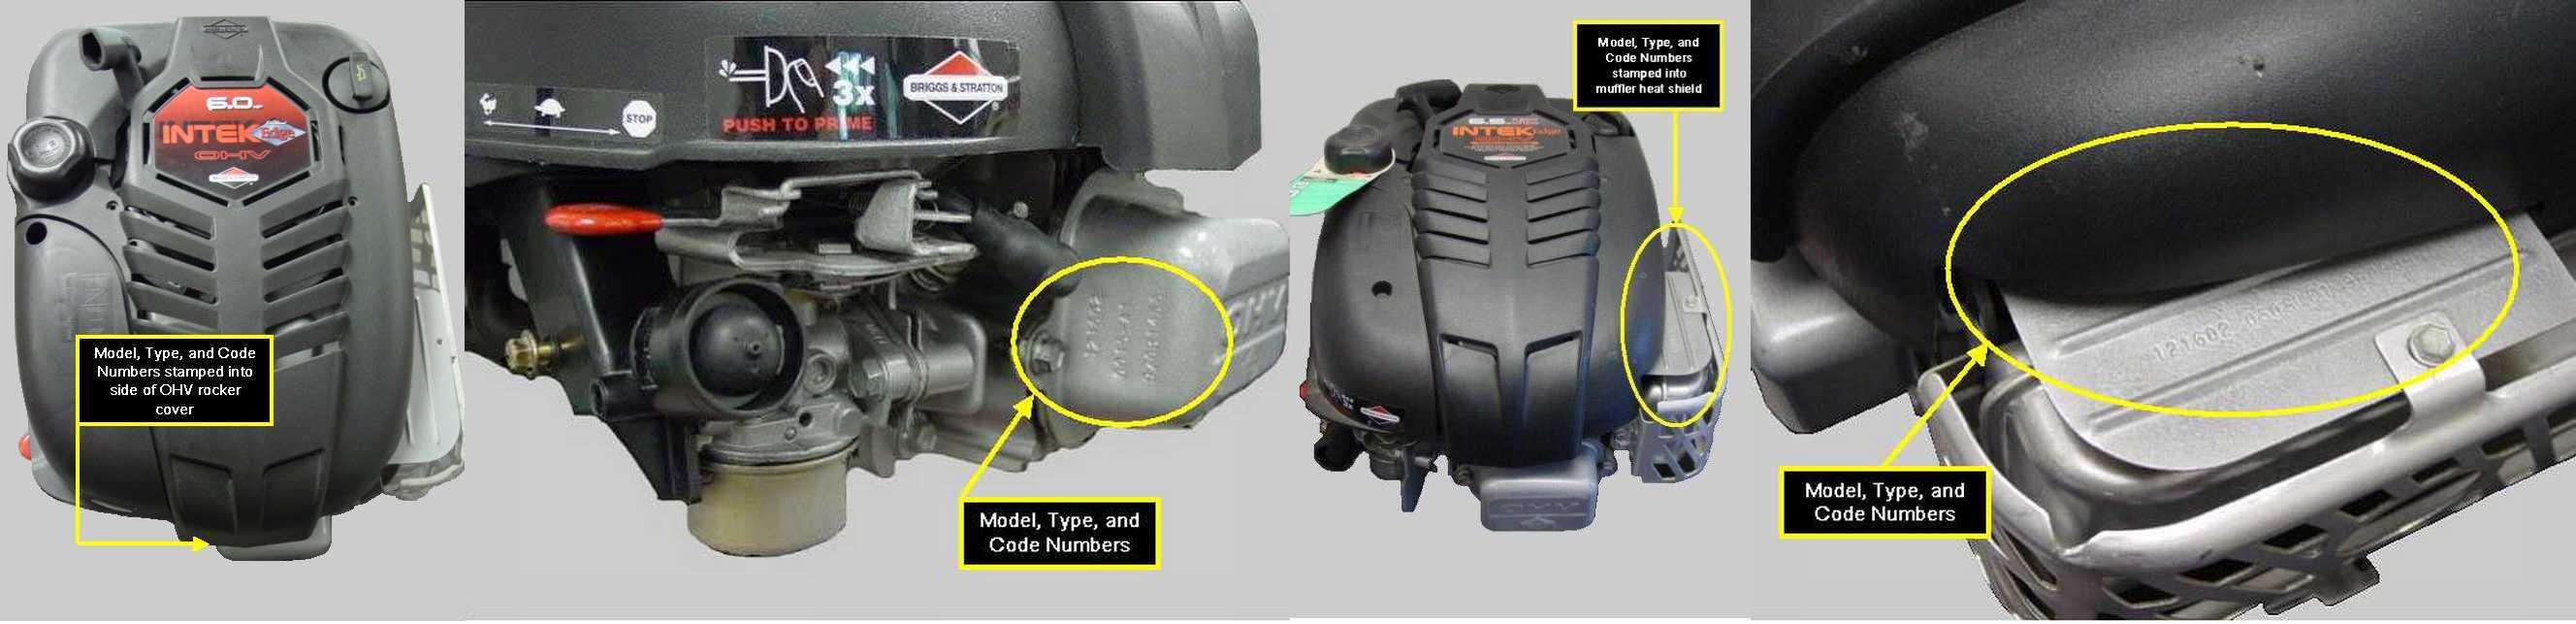 Power Washer Quantum 60 Hp Just Bought A With Briggs And Stratton Engine Images 65 Owners Manual